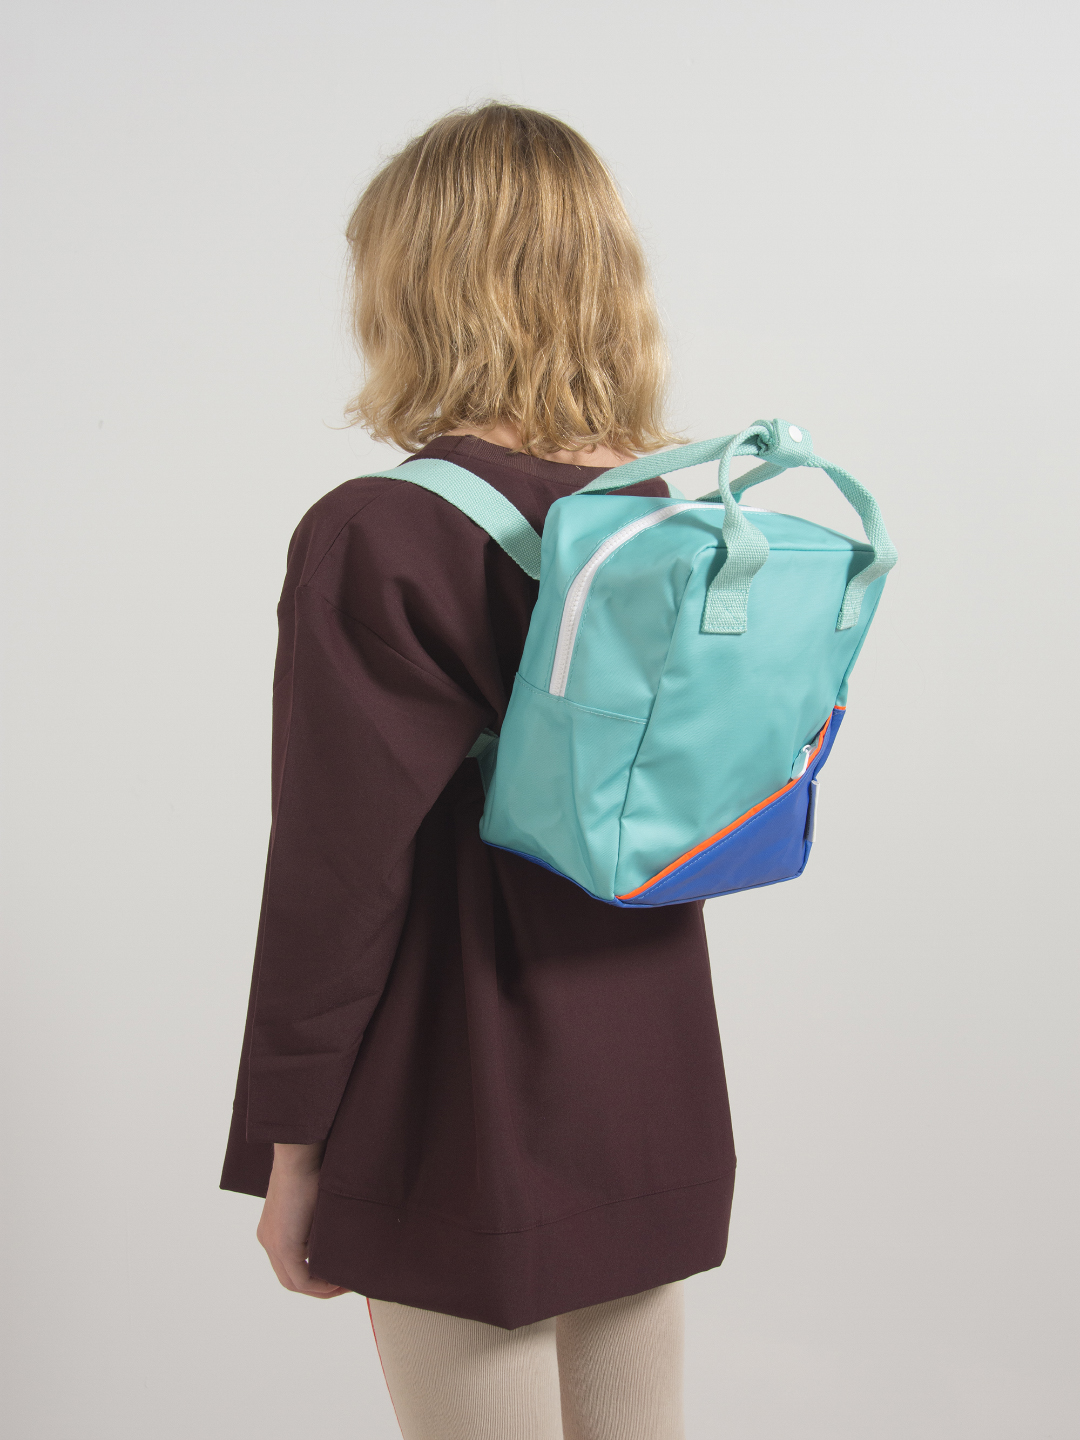 Small Backpack - Diagonal Retro Mint   Ink Blue ... db07a37ee7ab3